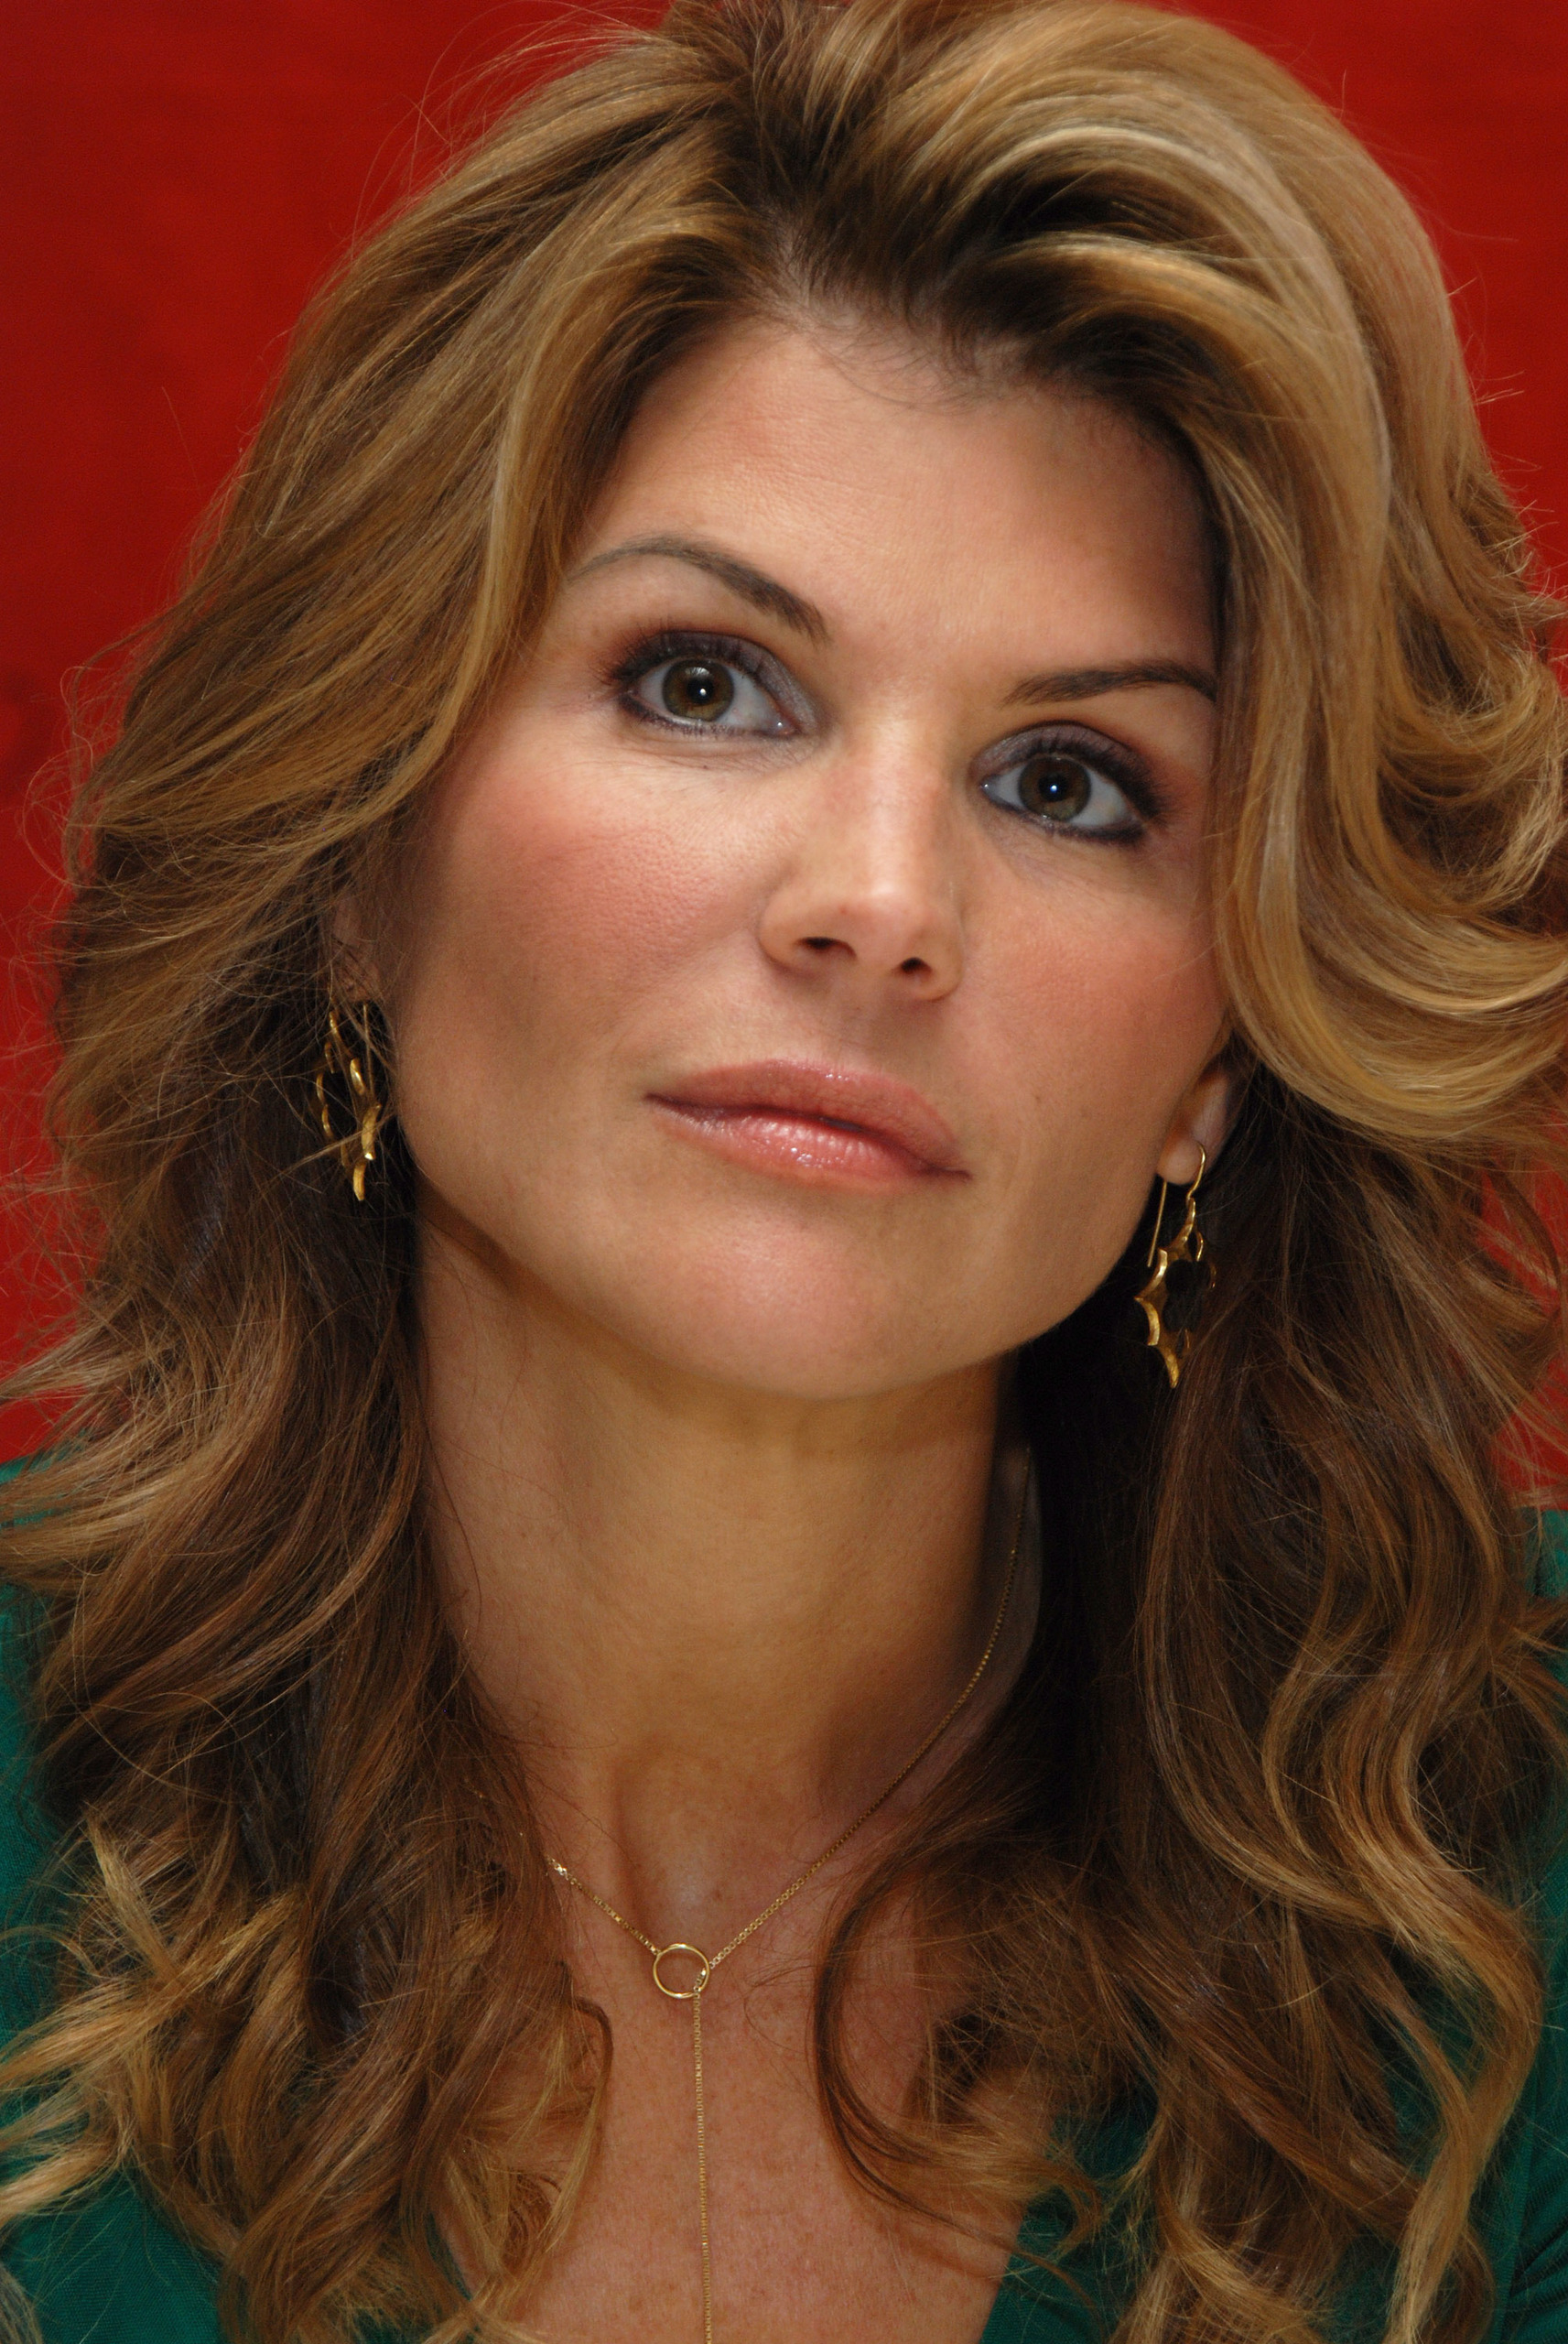 Lori loughlin lori loughlin photo 17323771 fanpop for Beauty full home